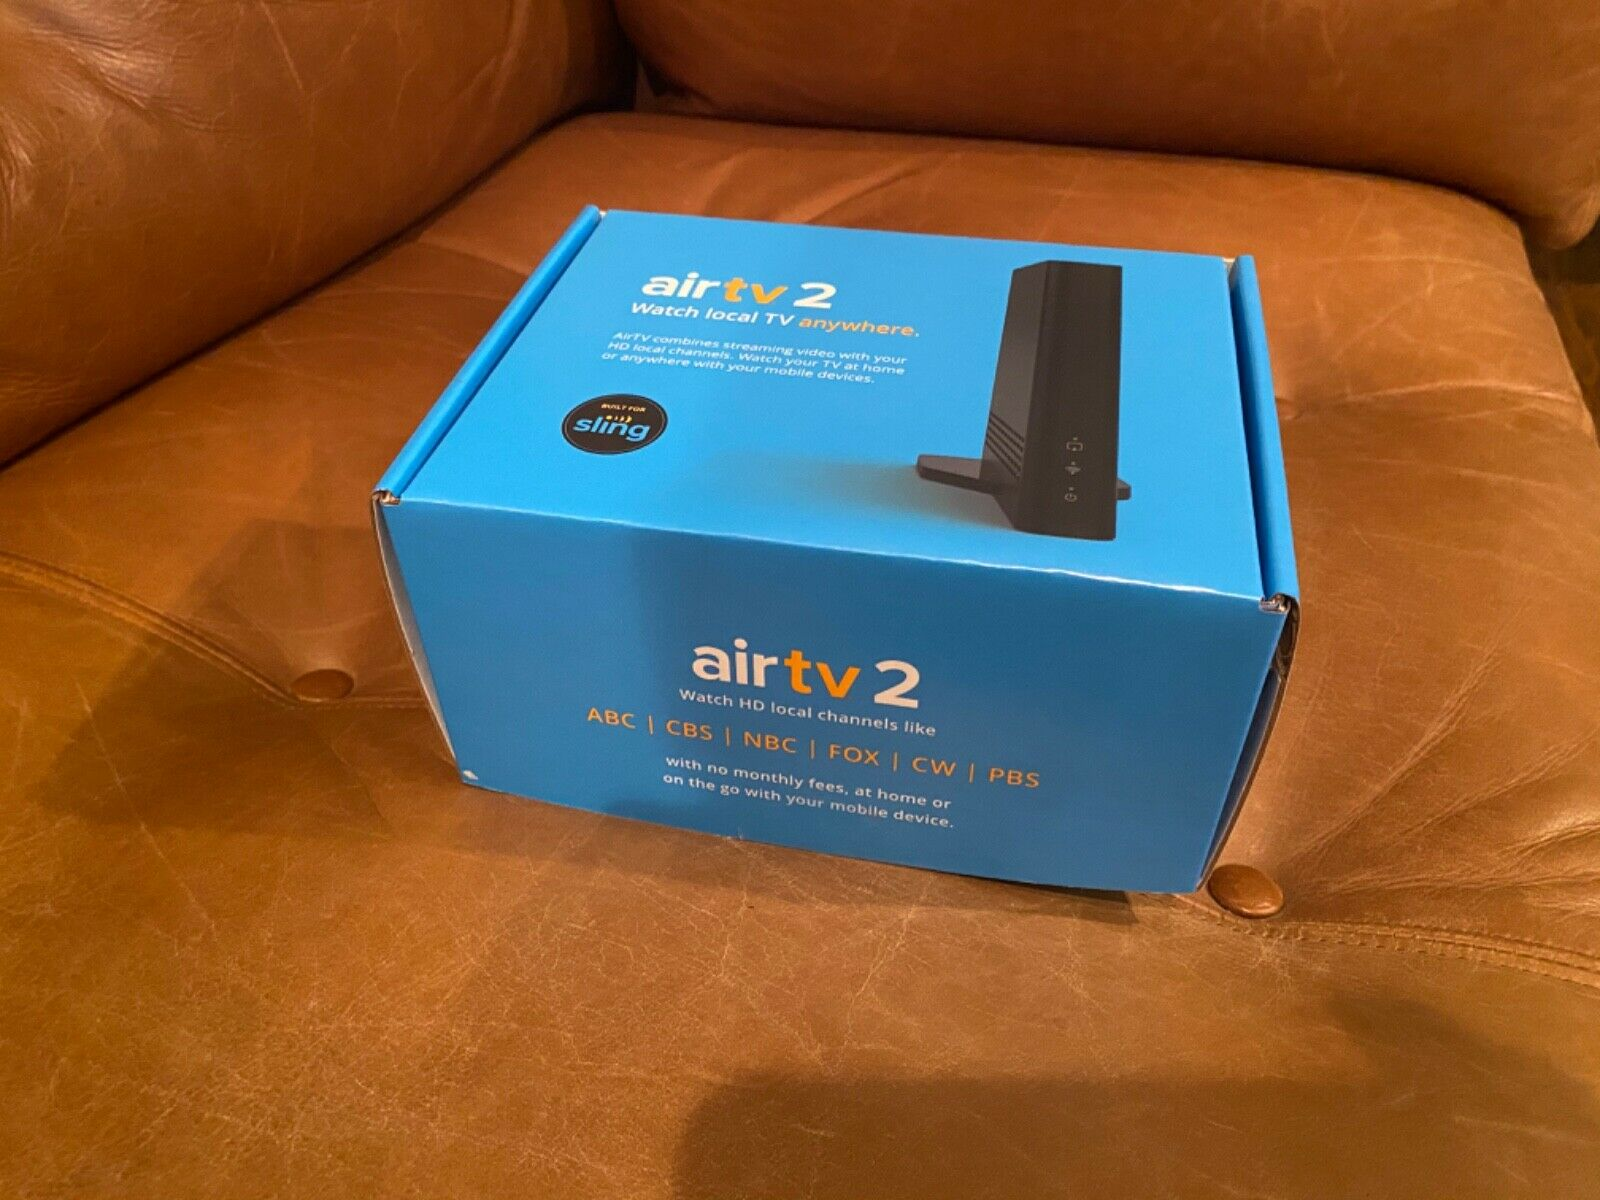 Sling AirTV 2 Tuner Local Channel Streaming Media Player Latest Model airtv channel latest local media model player sling streaming tuner